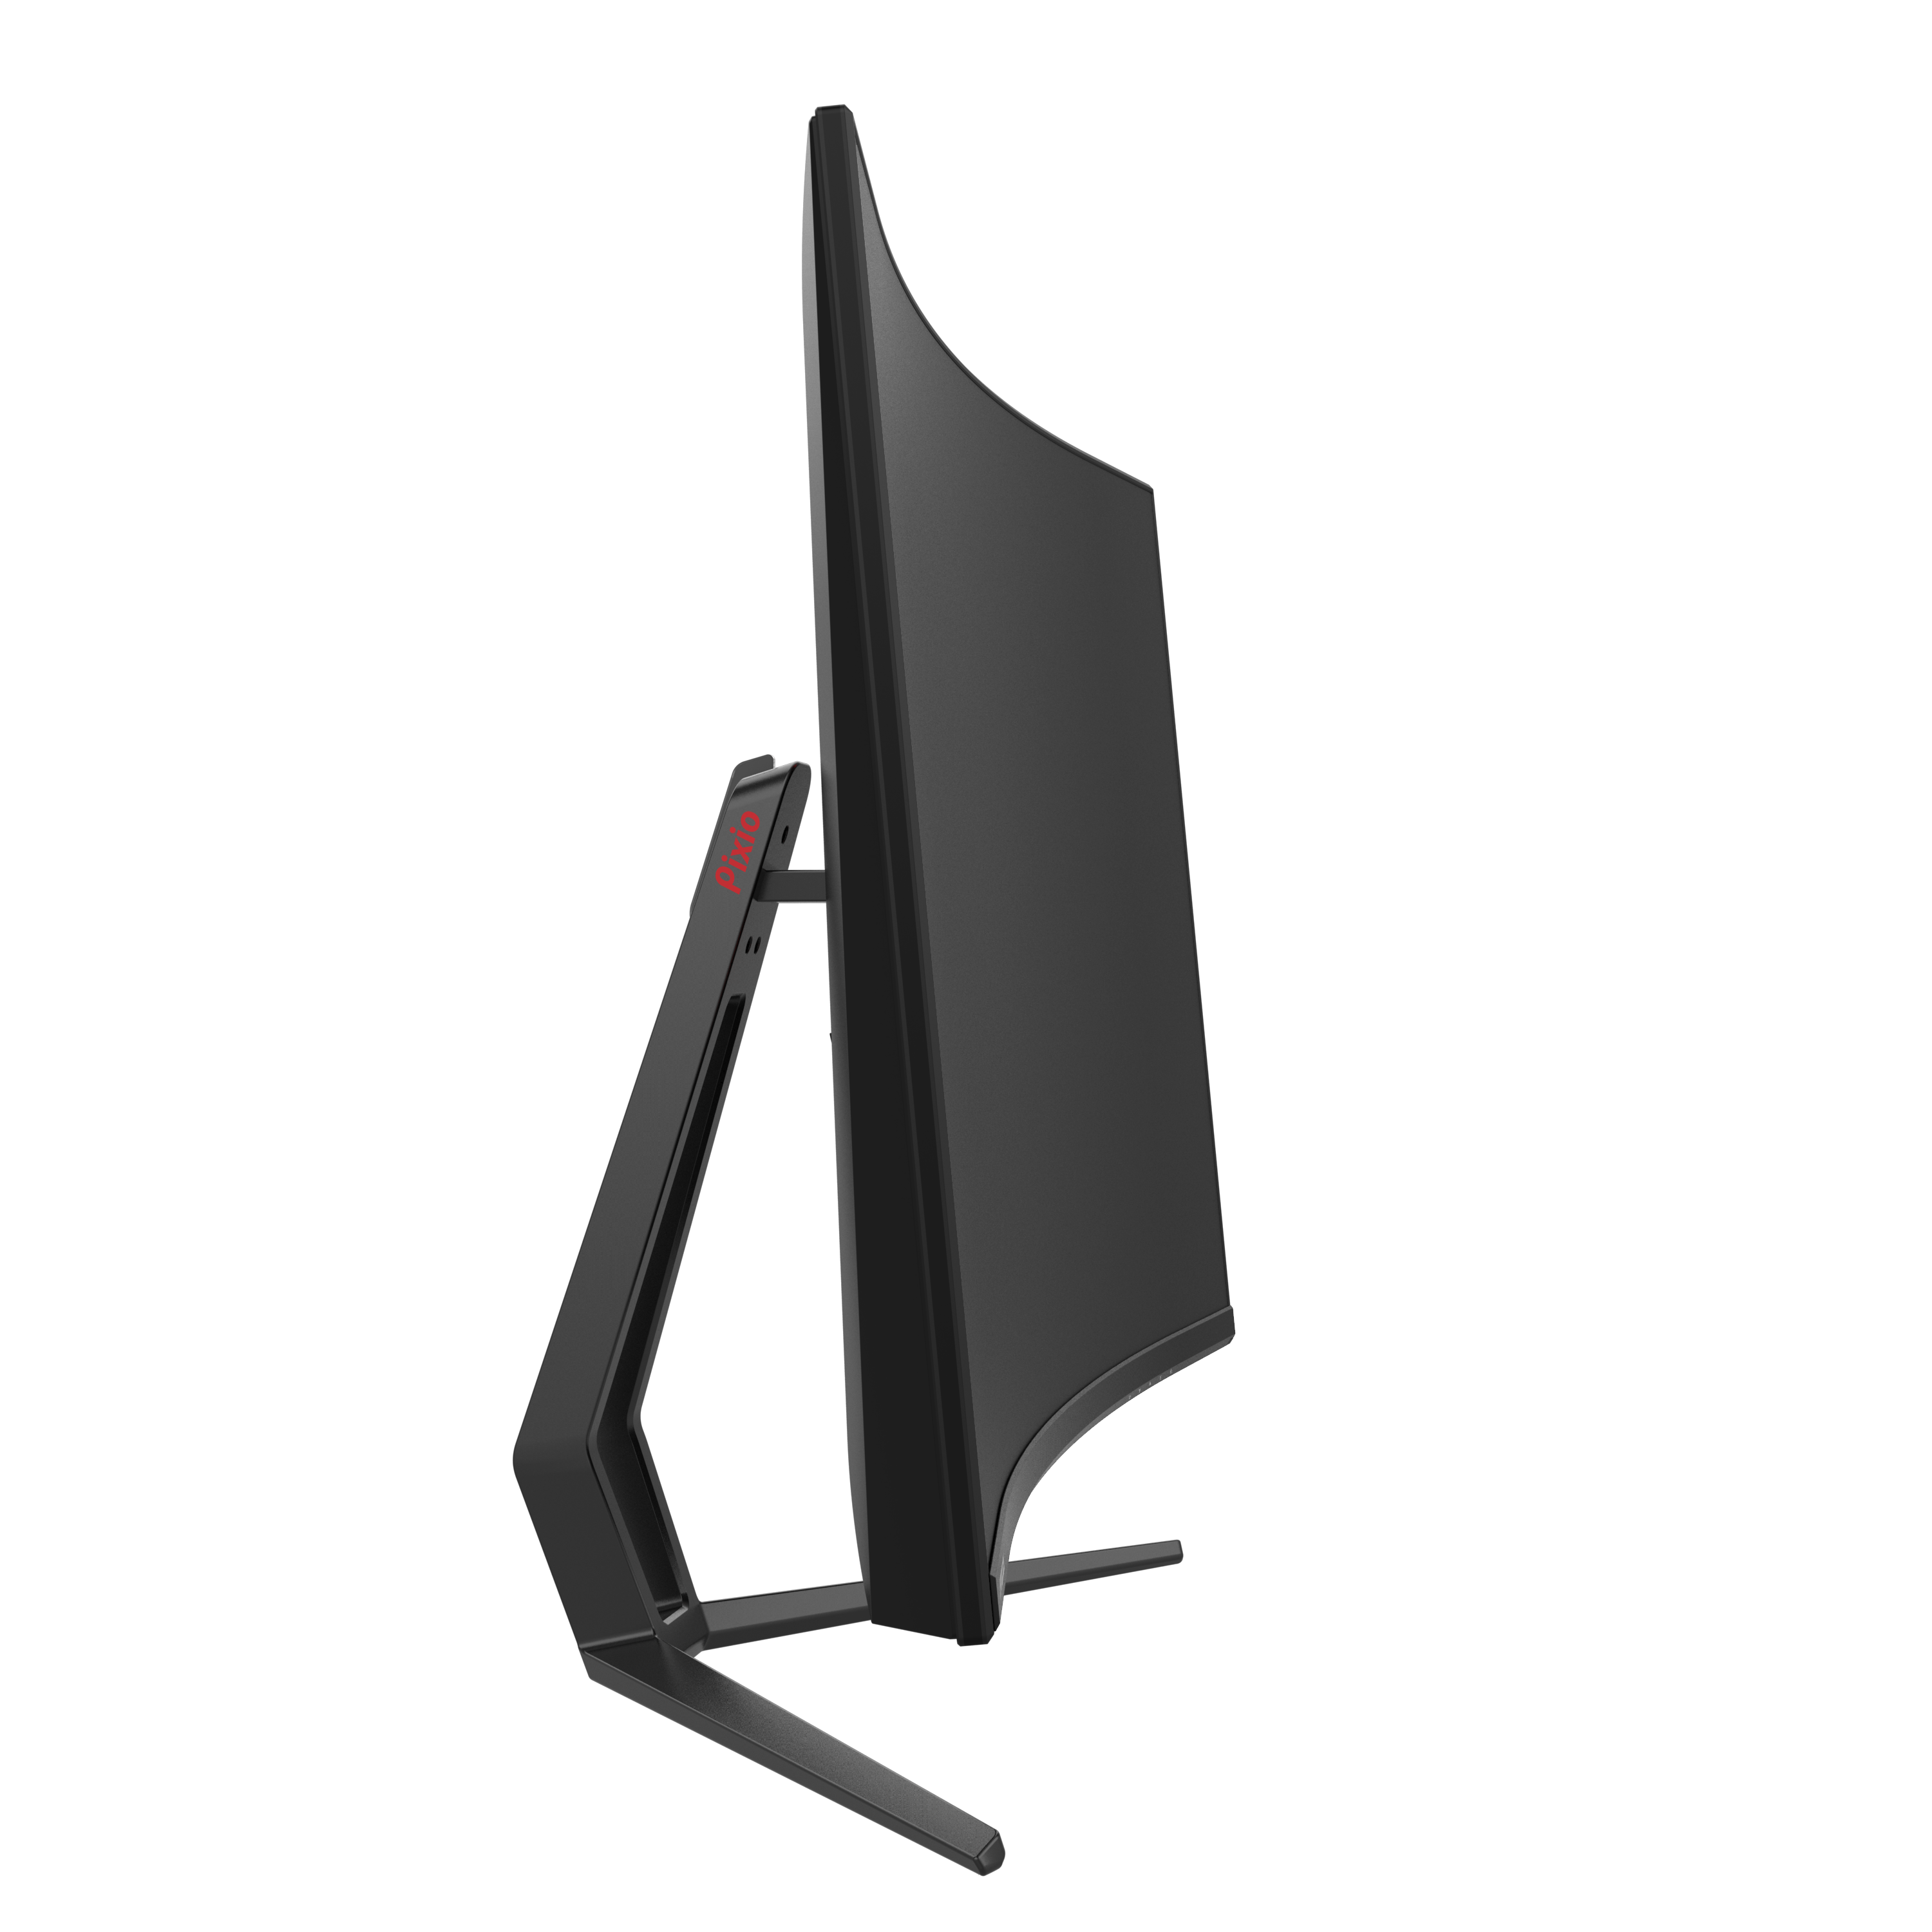 Pixio USA | PXC32 32 inch 1440p 144hz Curved Gaming Monitor